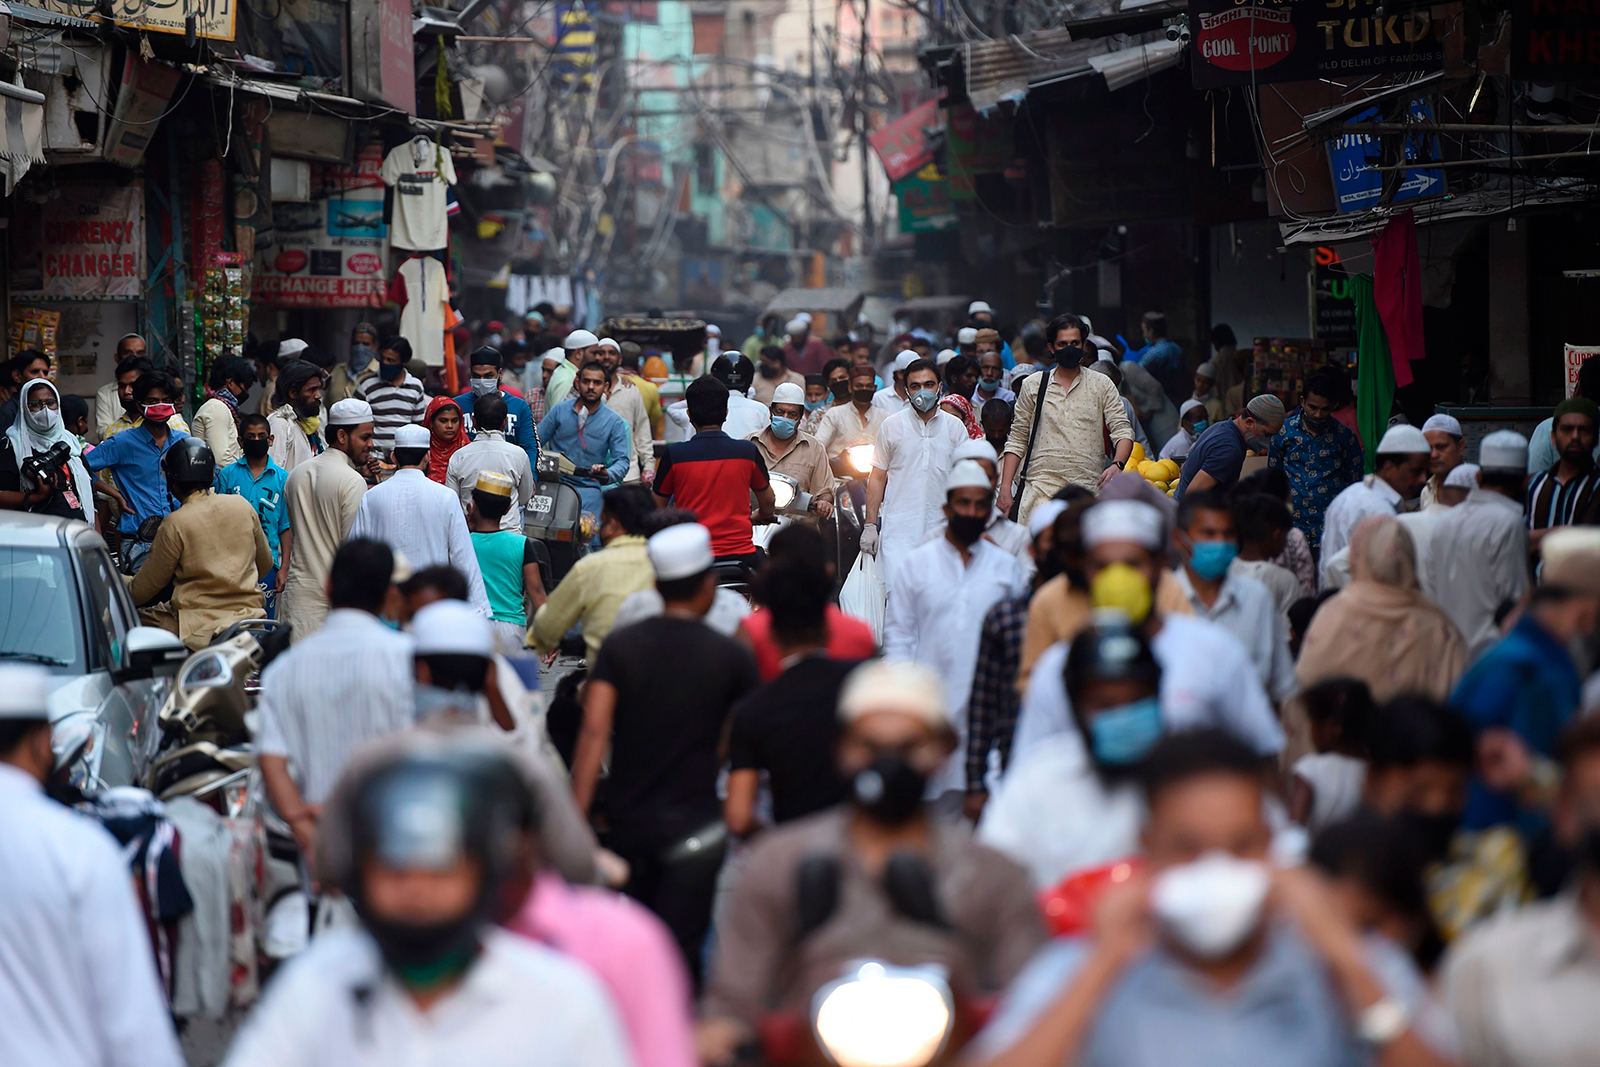 People gather at a market in the old quarters of New Delhi on May 22.